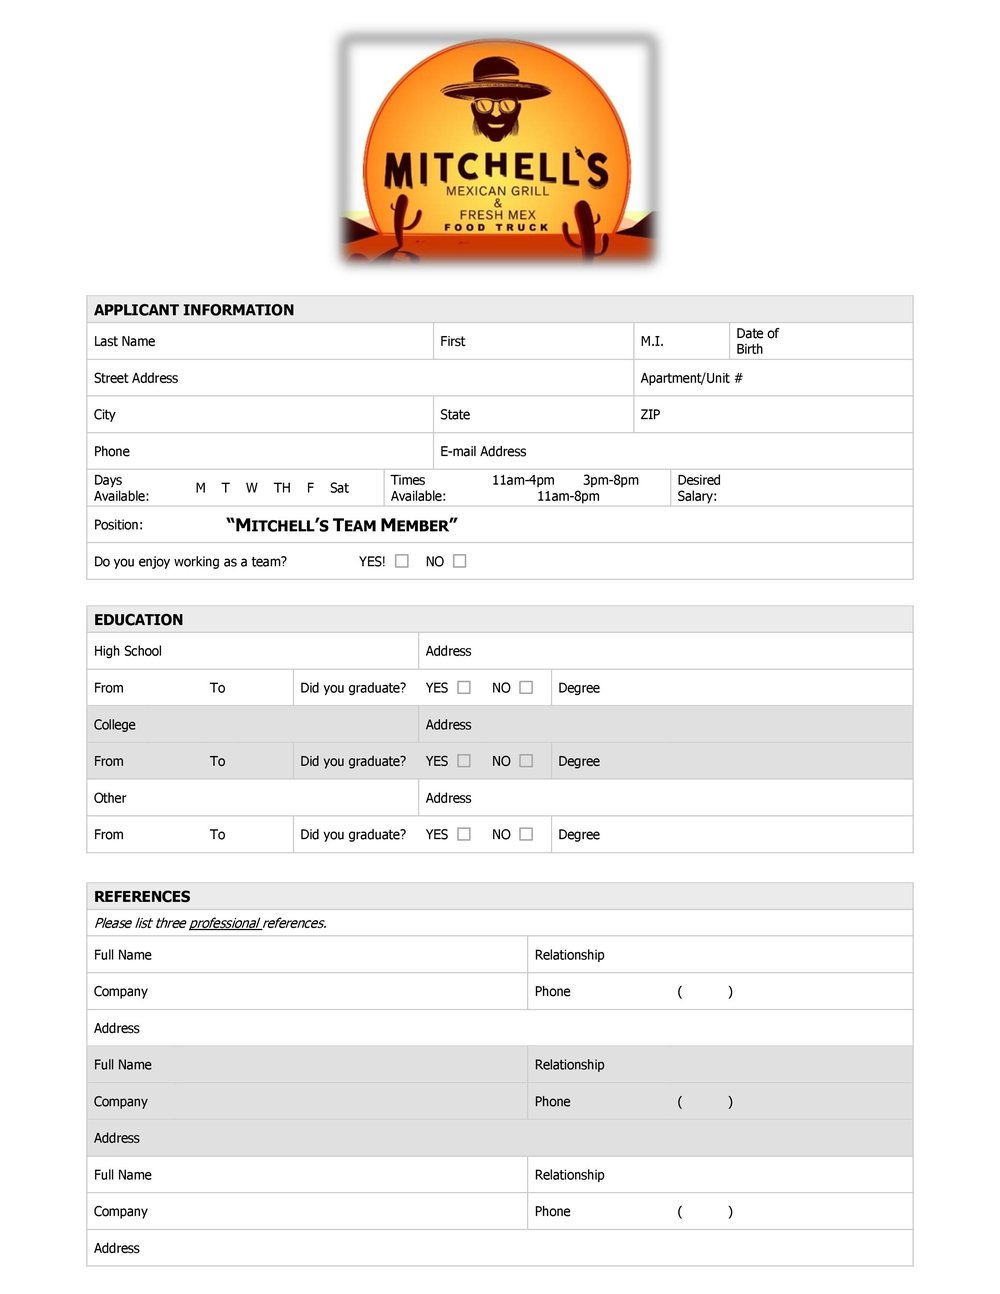 mitchells_application.png